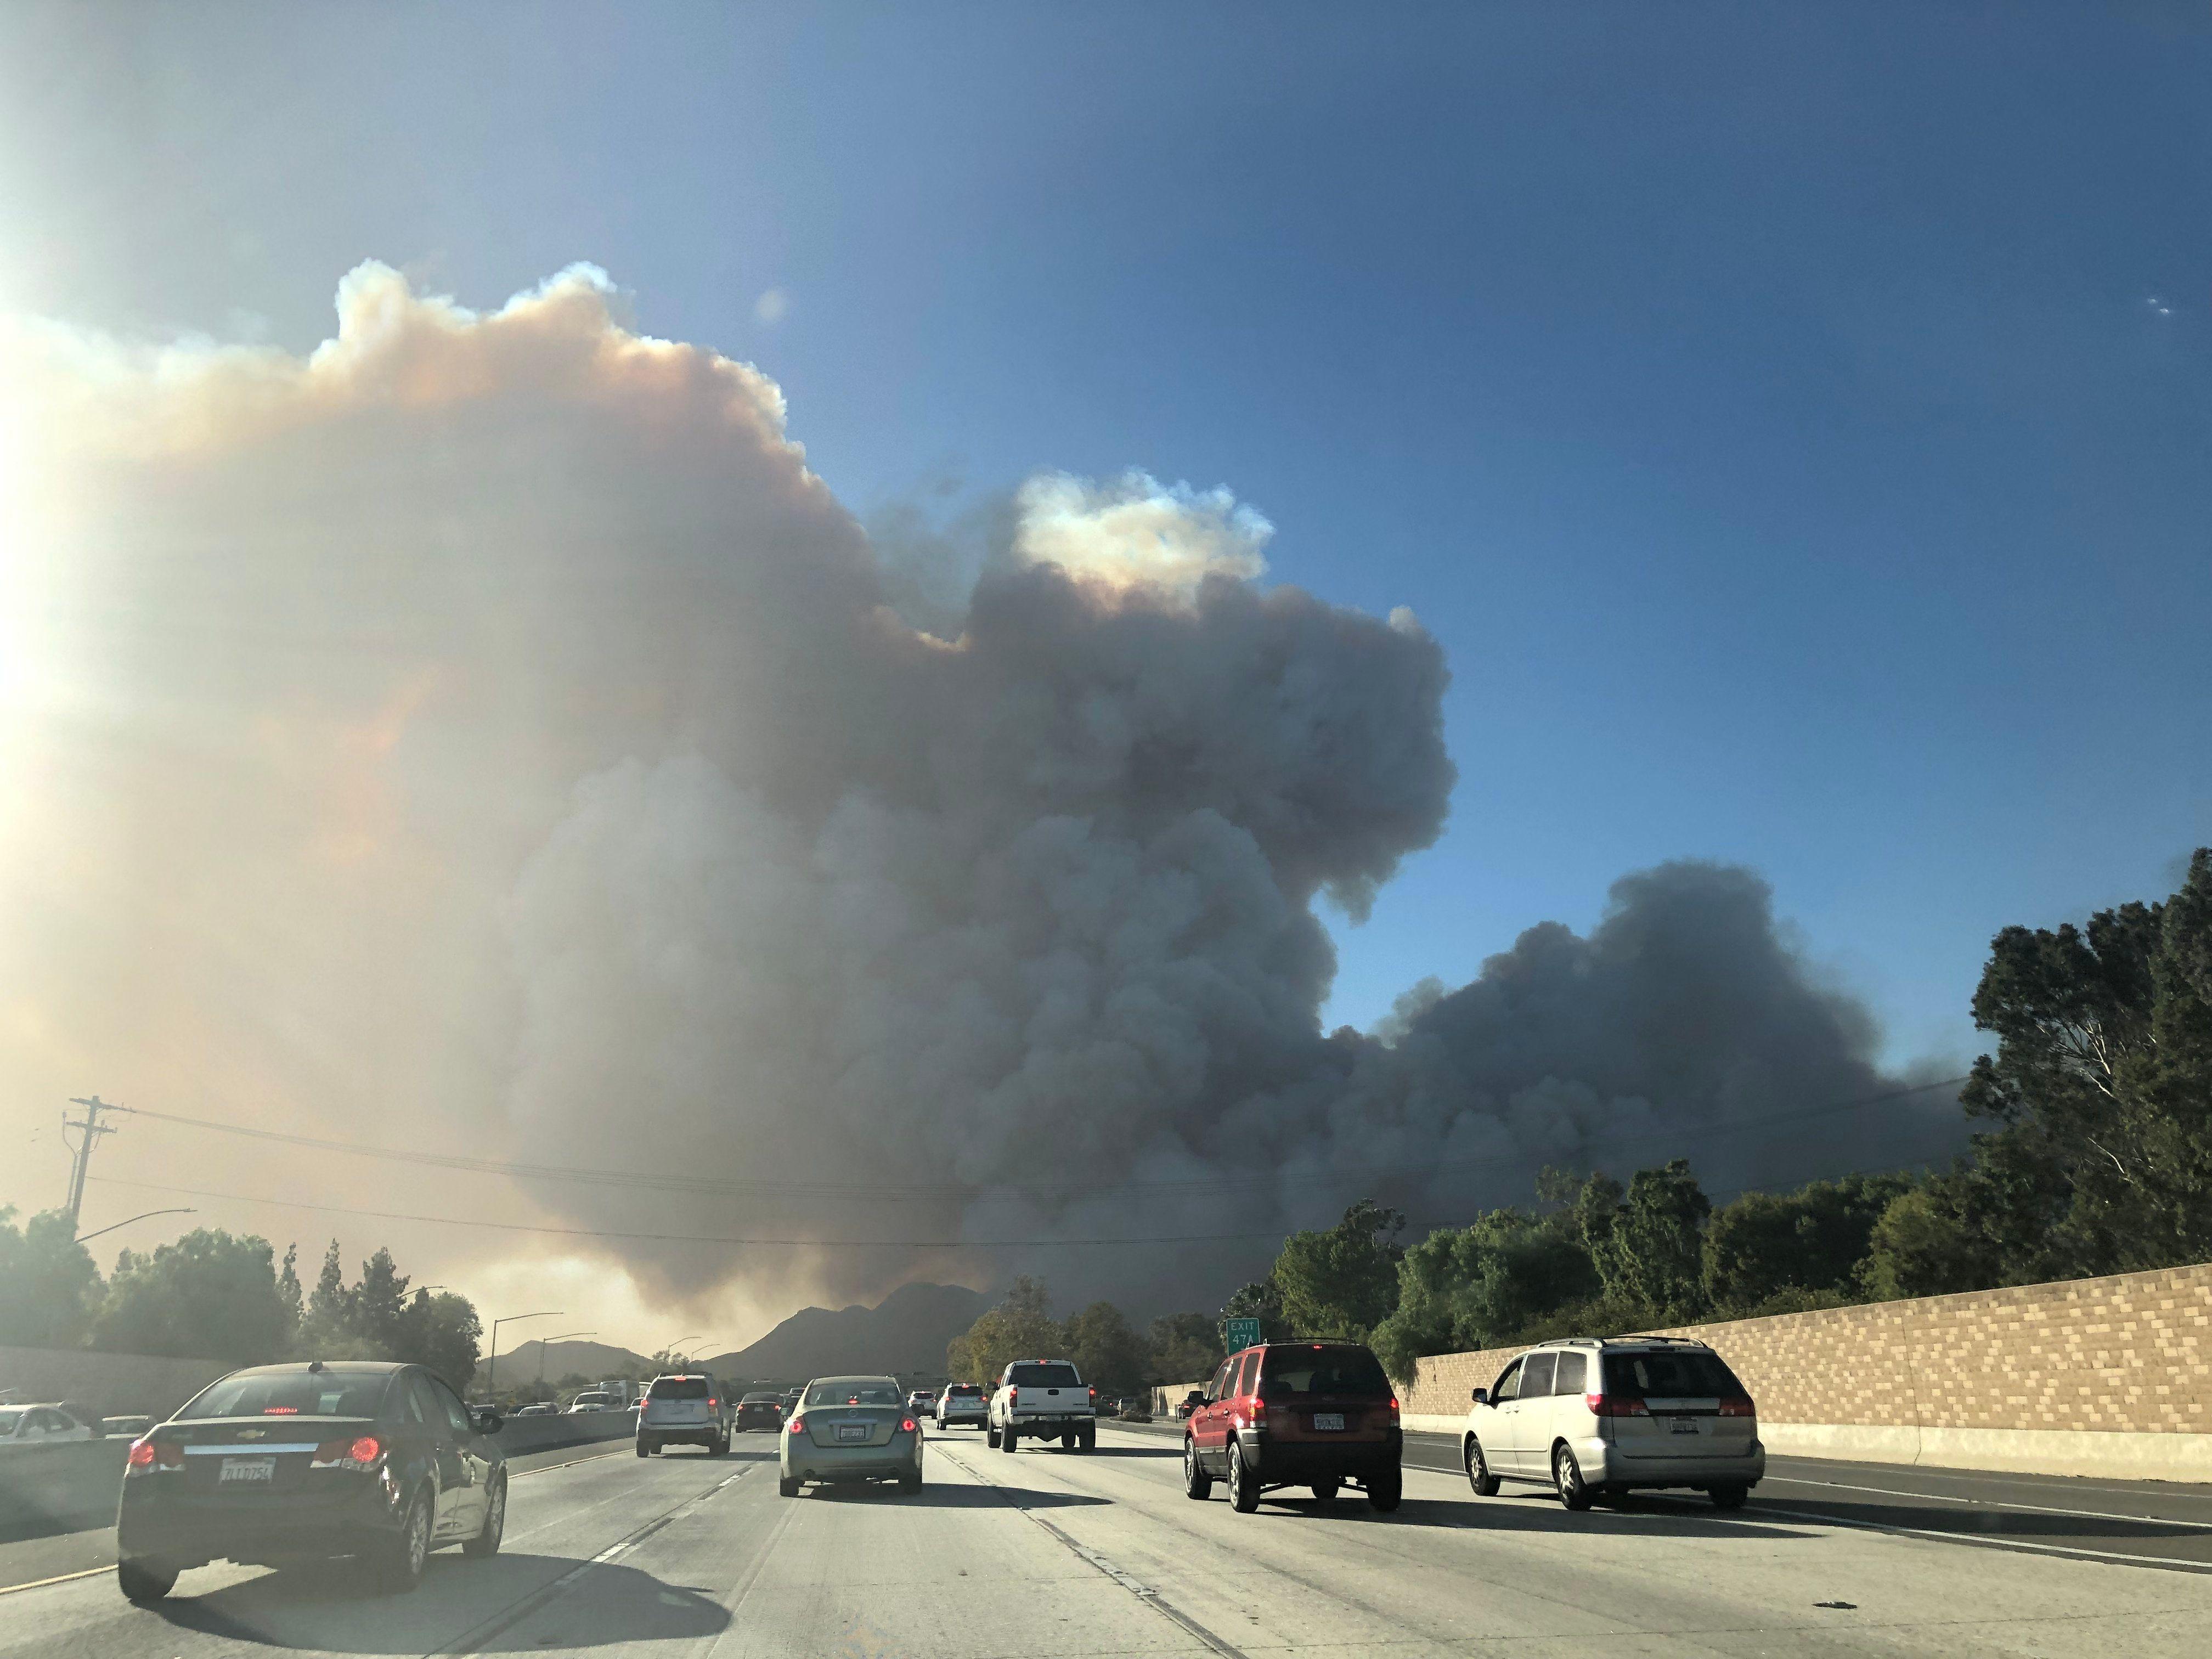 A wildfire is burning in Southern California.